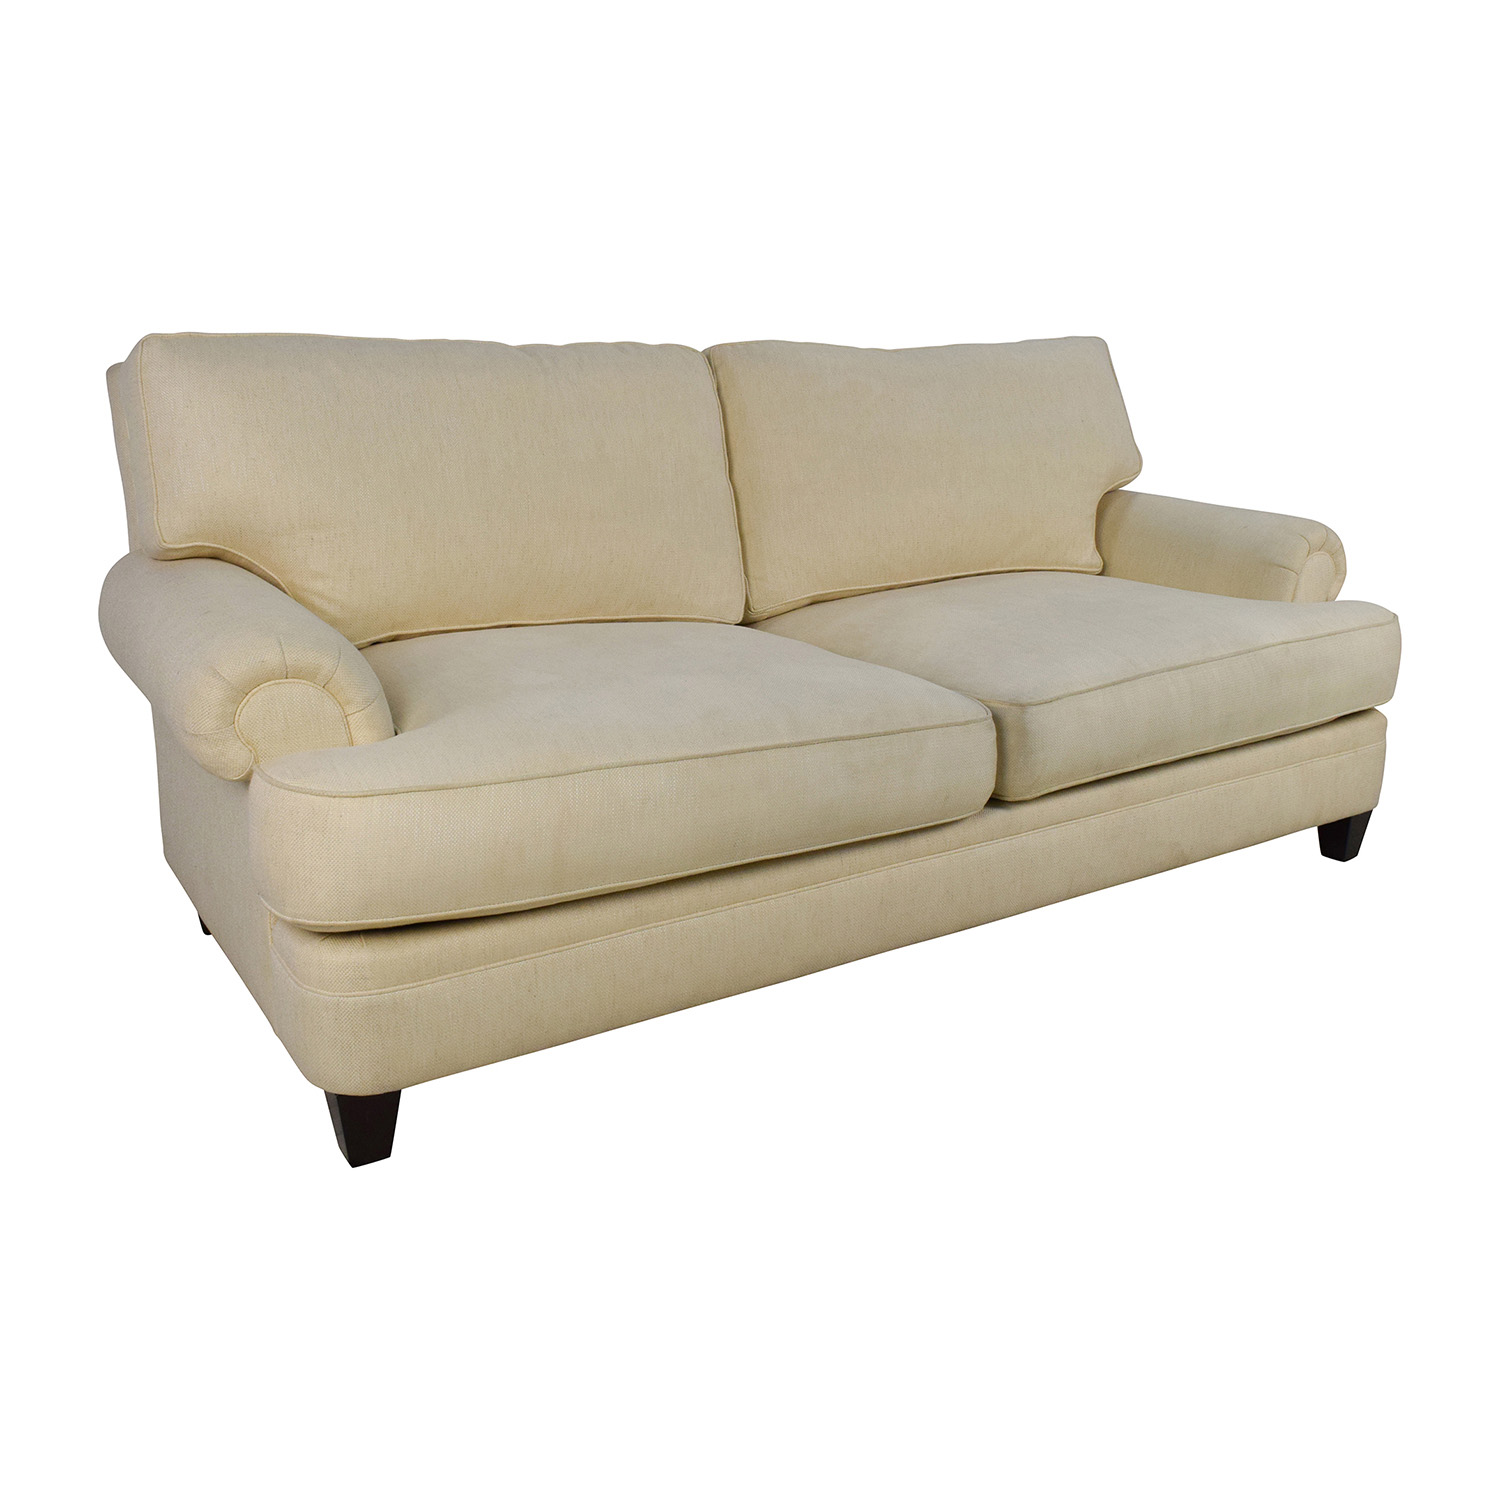 henredon sofa leather bed new jersey lovely sectional sofas